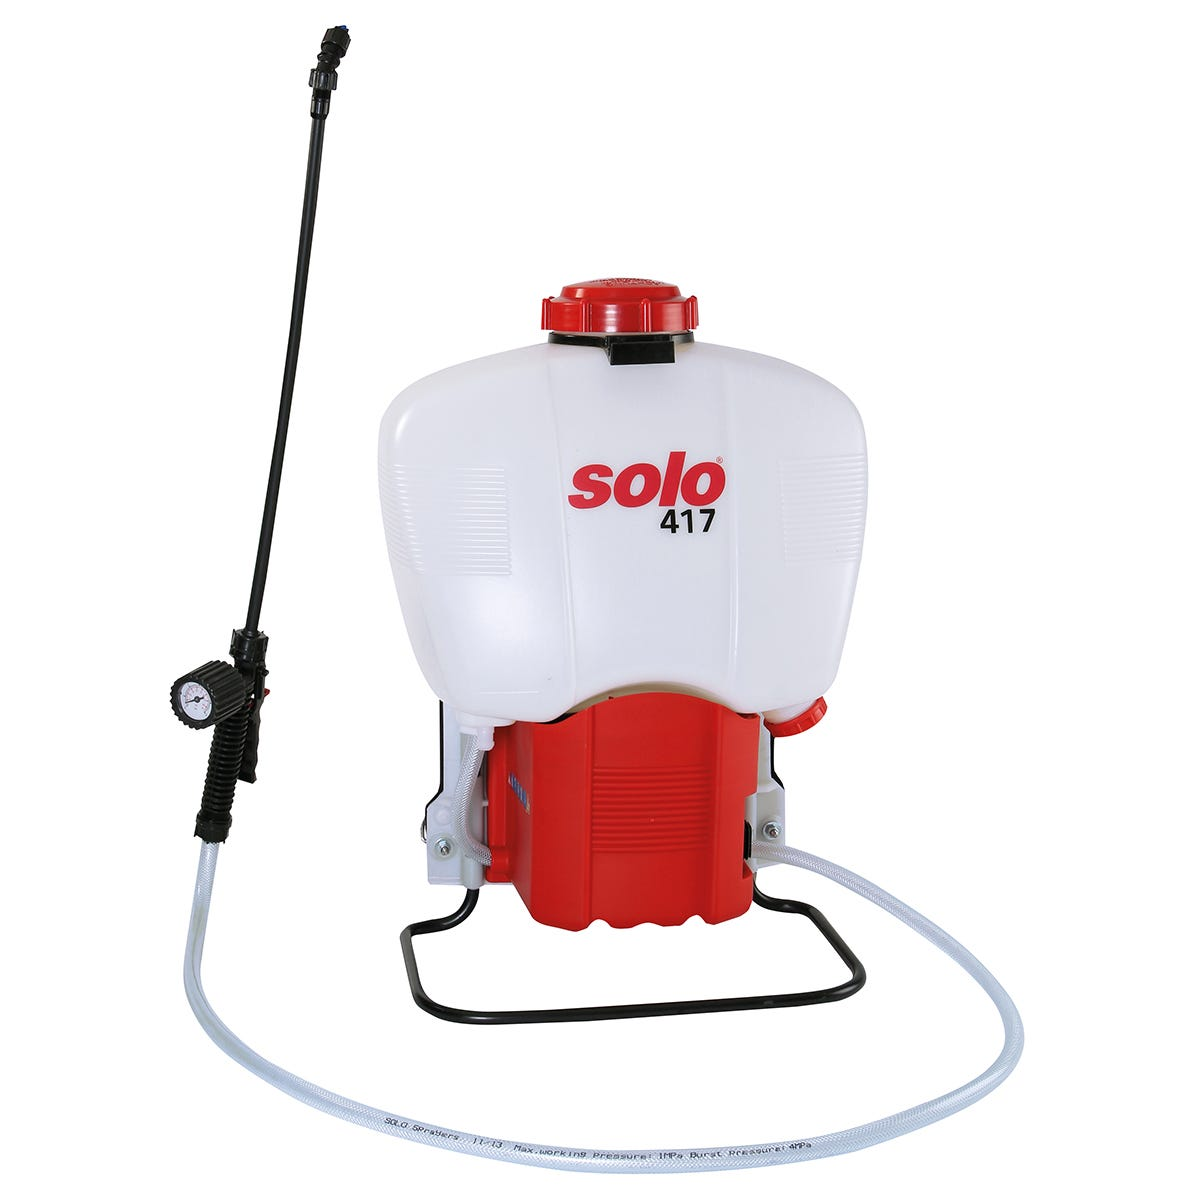 Solo 417 18 Litre Battery-Operated Backpack Sprayer